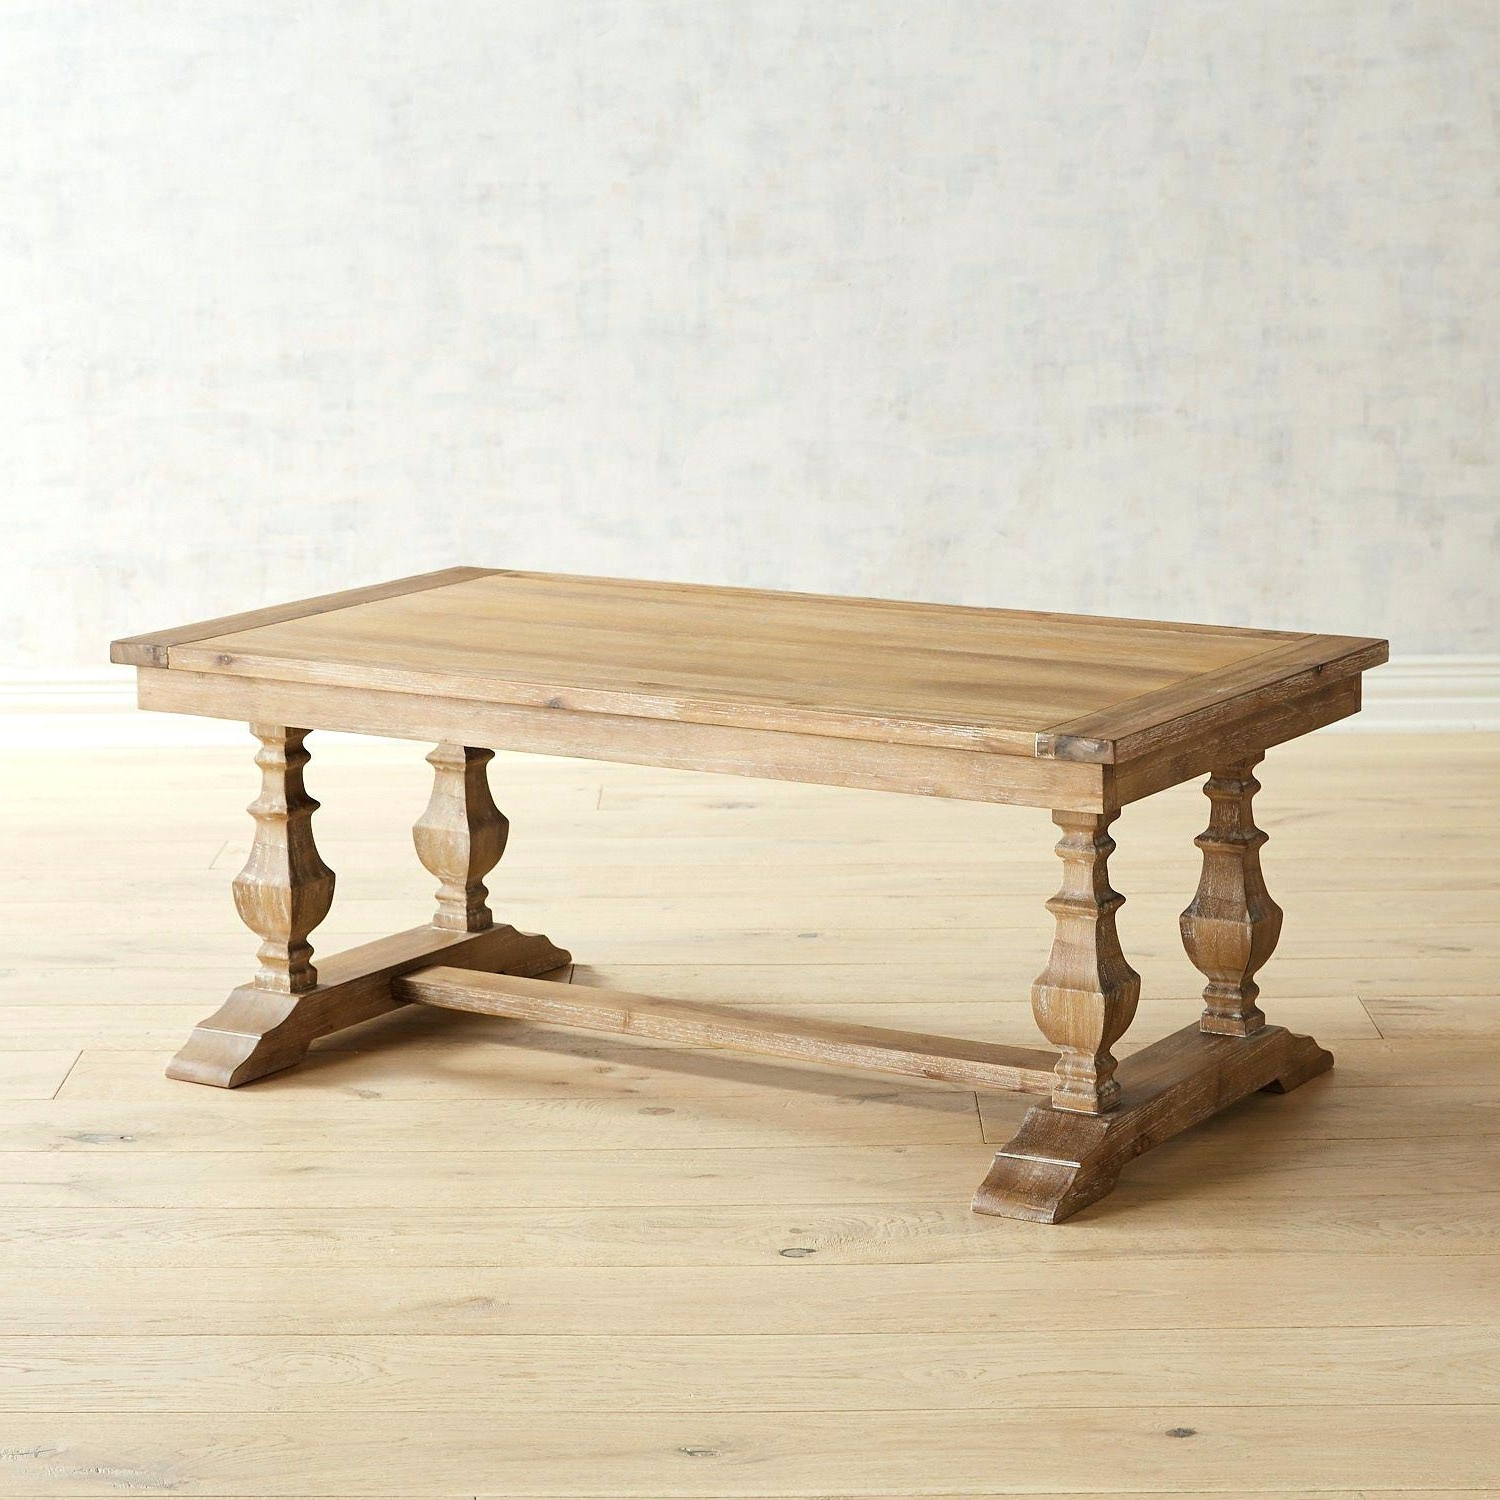 Natural Coffee Table Pier 1 Imports For Natural Coffee Table Plans Throughout Most Up To Date Light Natural Coffee Tables (View 14 of 20)